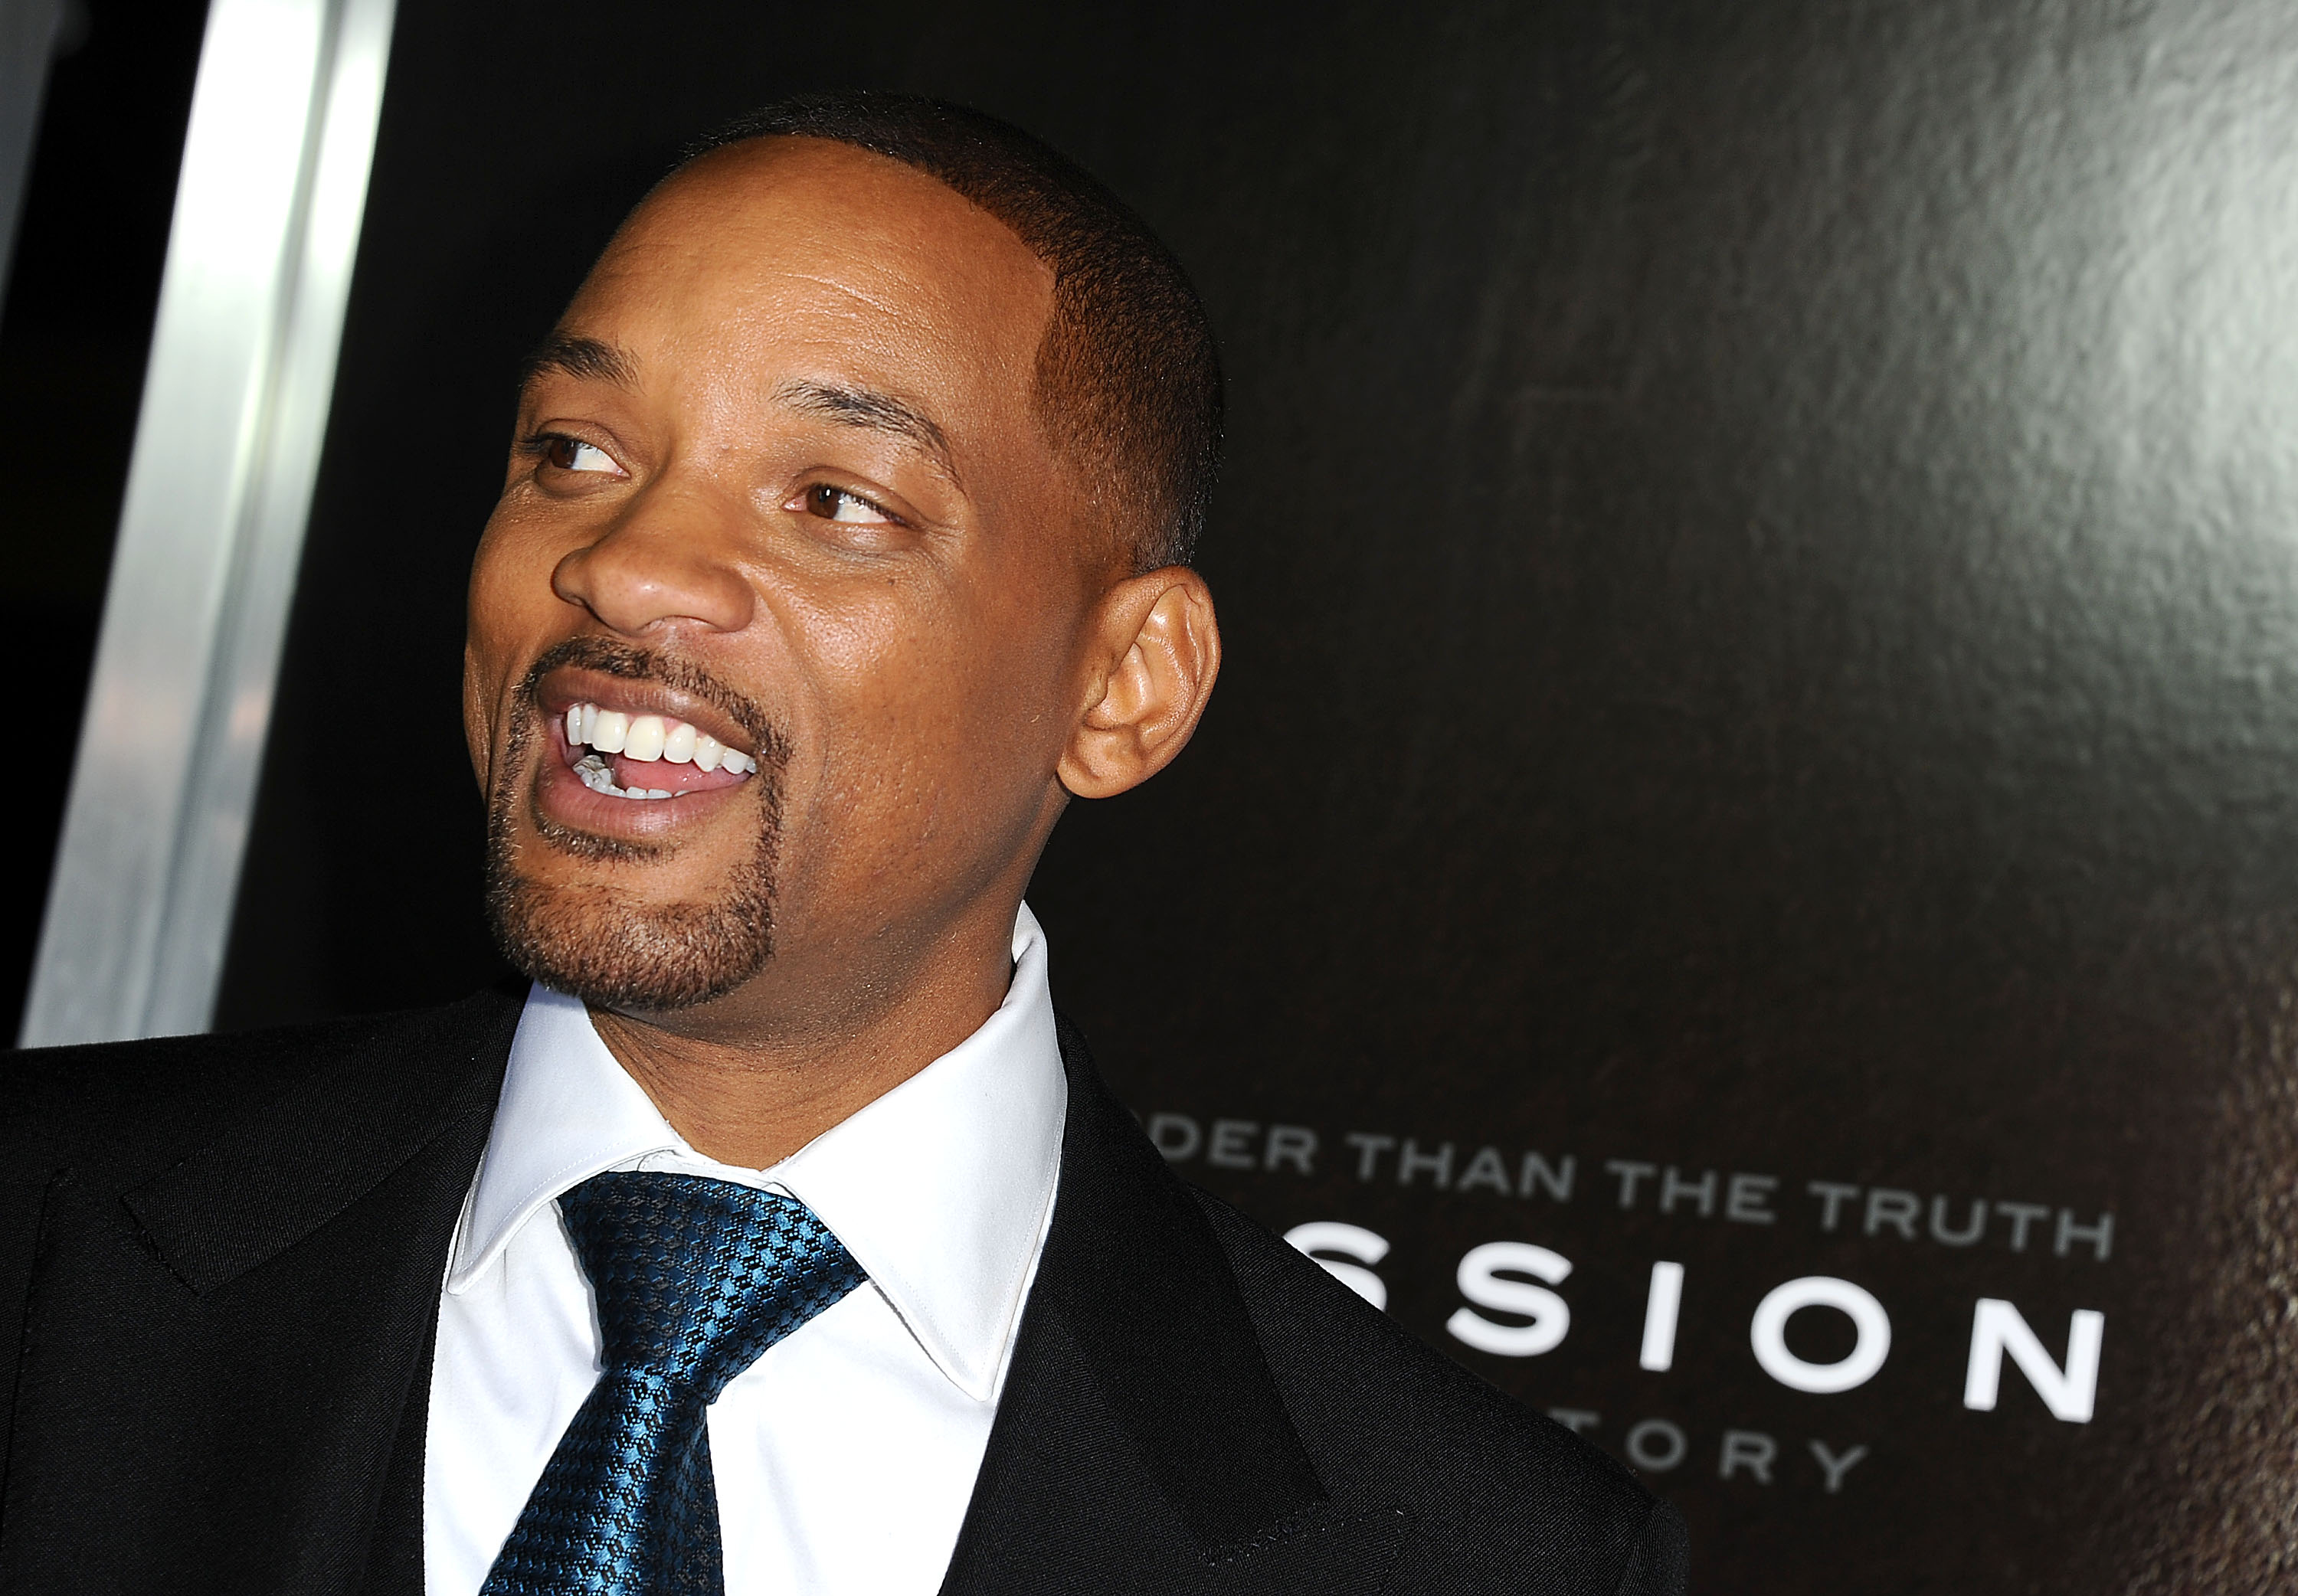 ctor Will Smith attends a screening of  Concussion  at Regency Village Theatre on November 23, 2015 in Westwood, California.